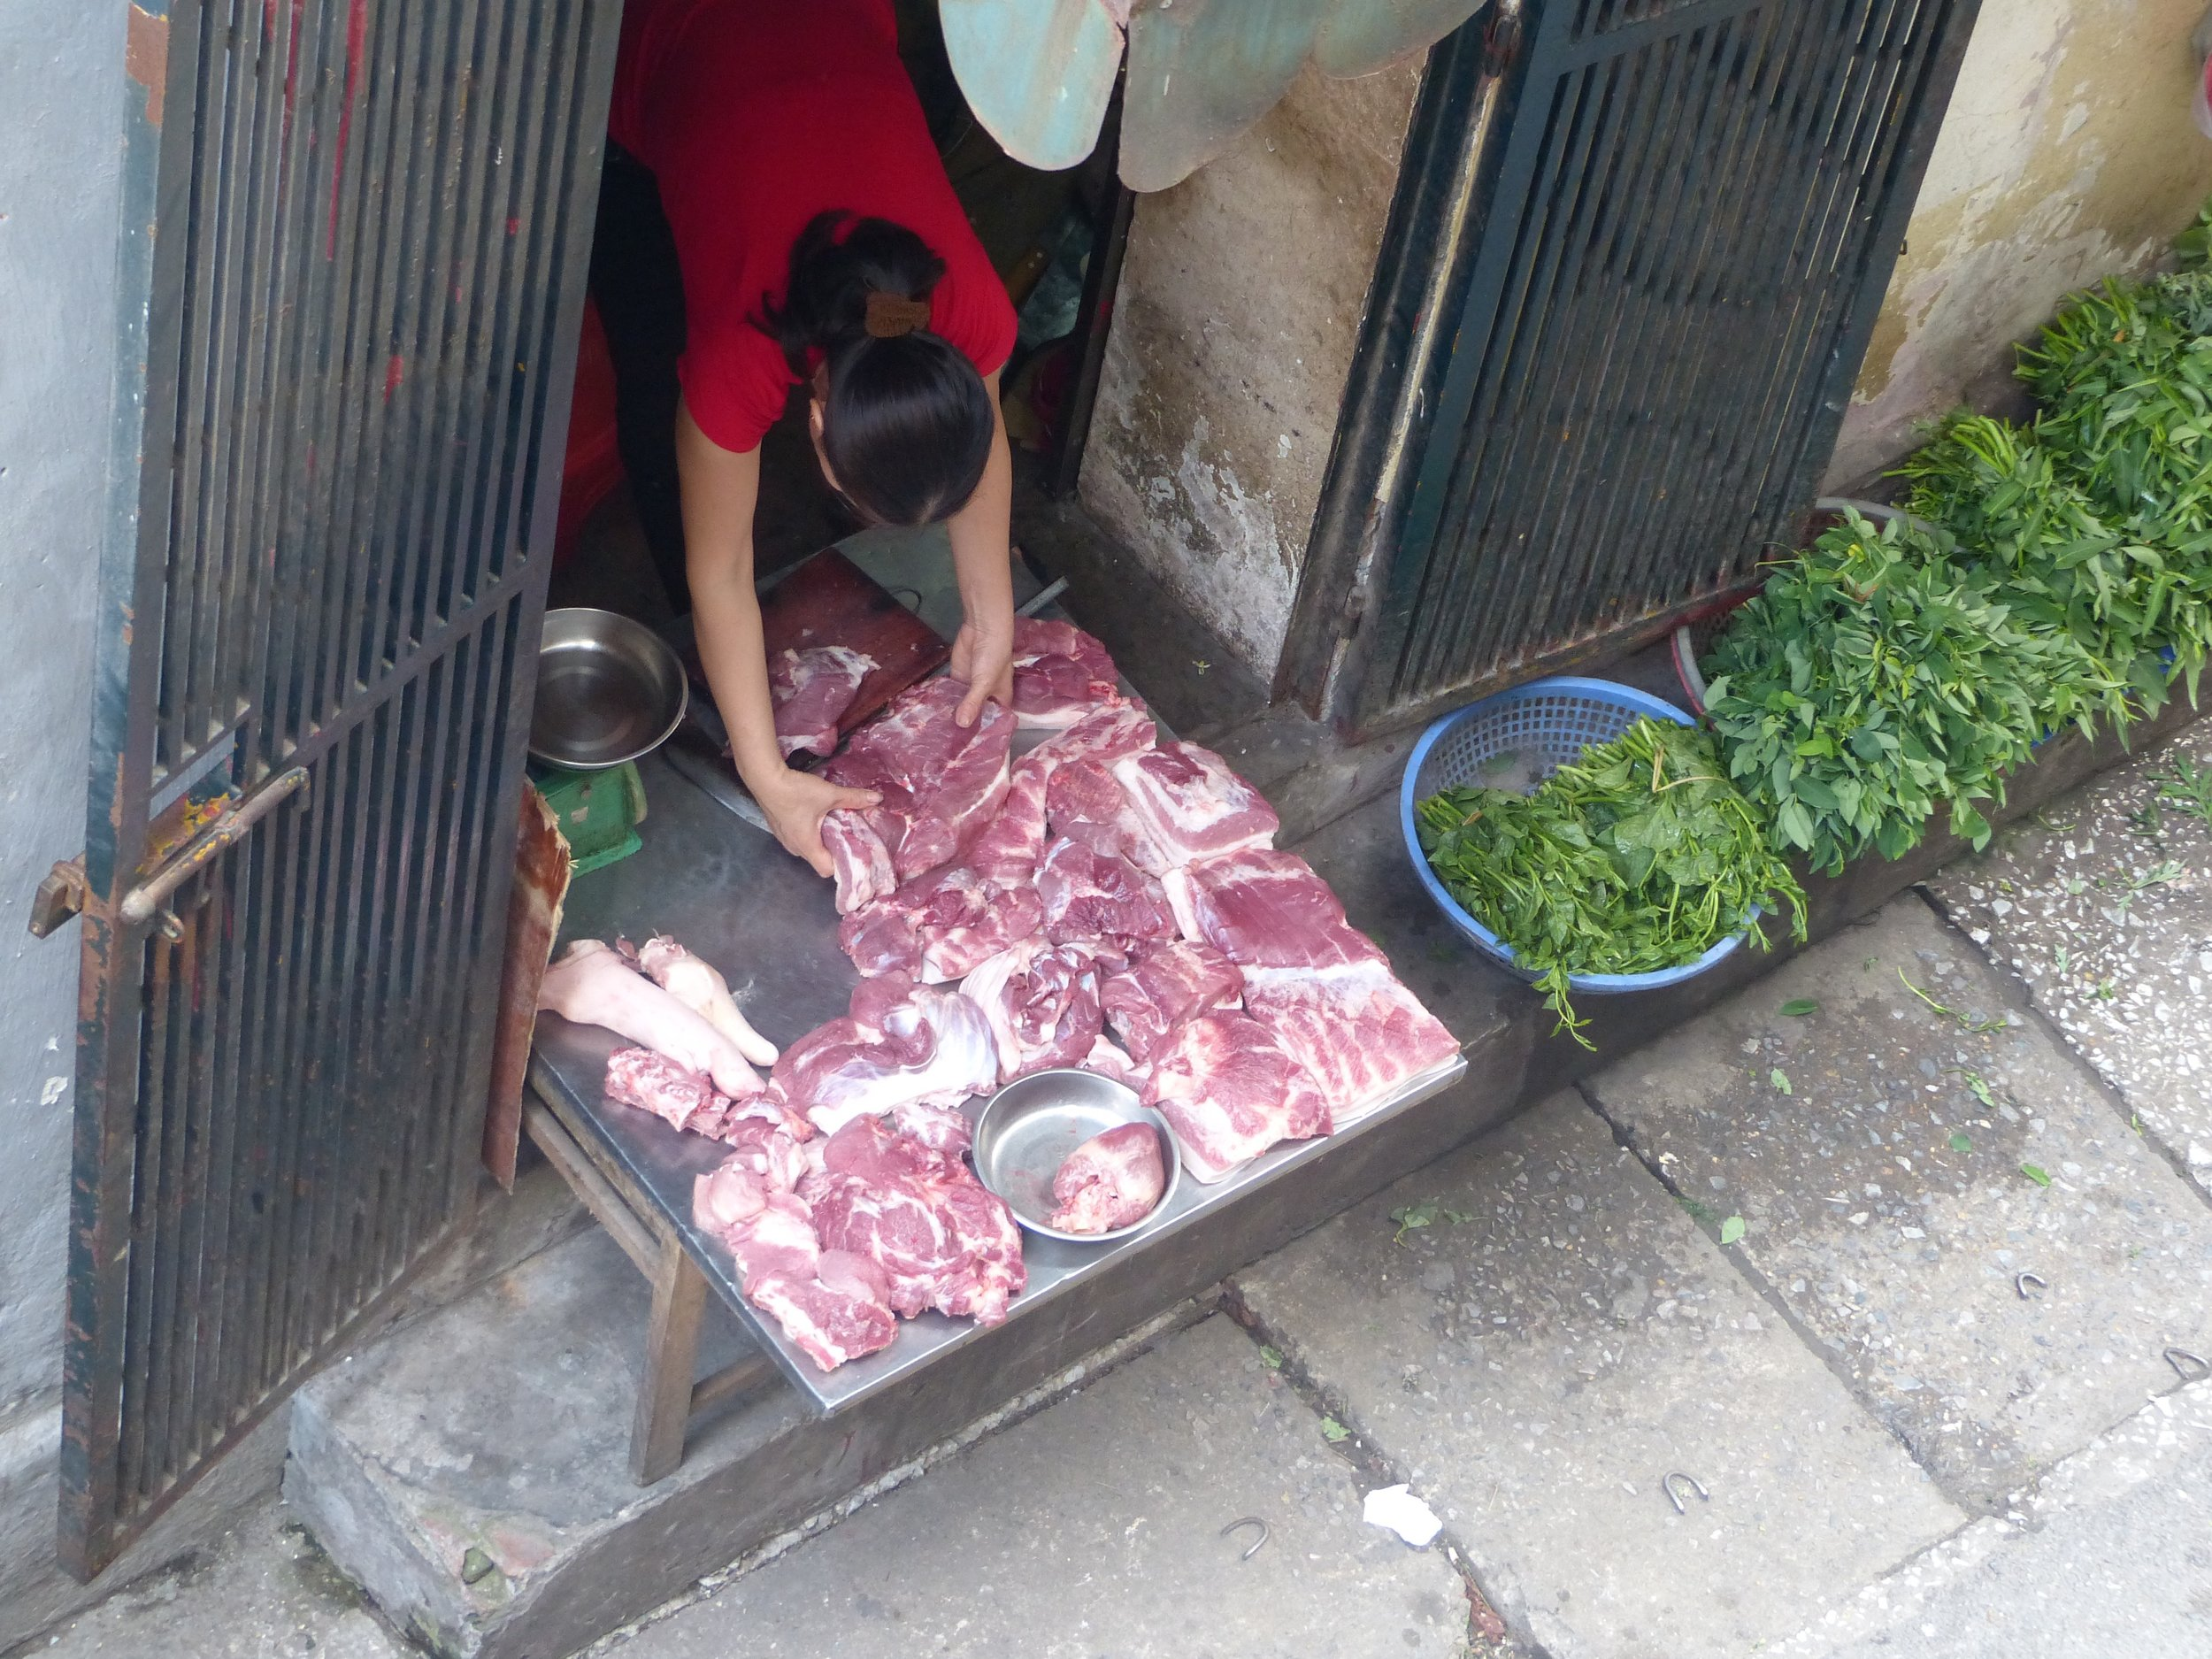 Why are Vietnamese butchers primarily women?